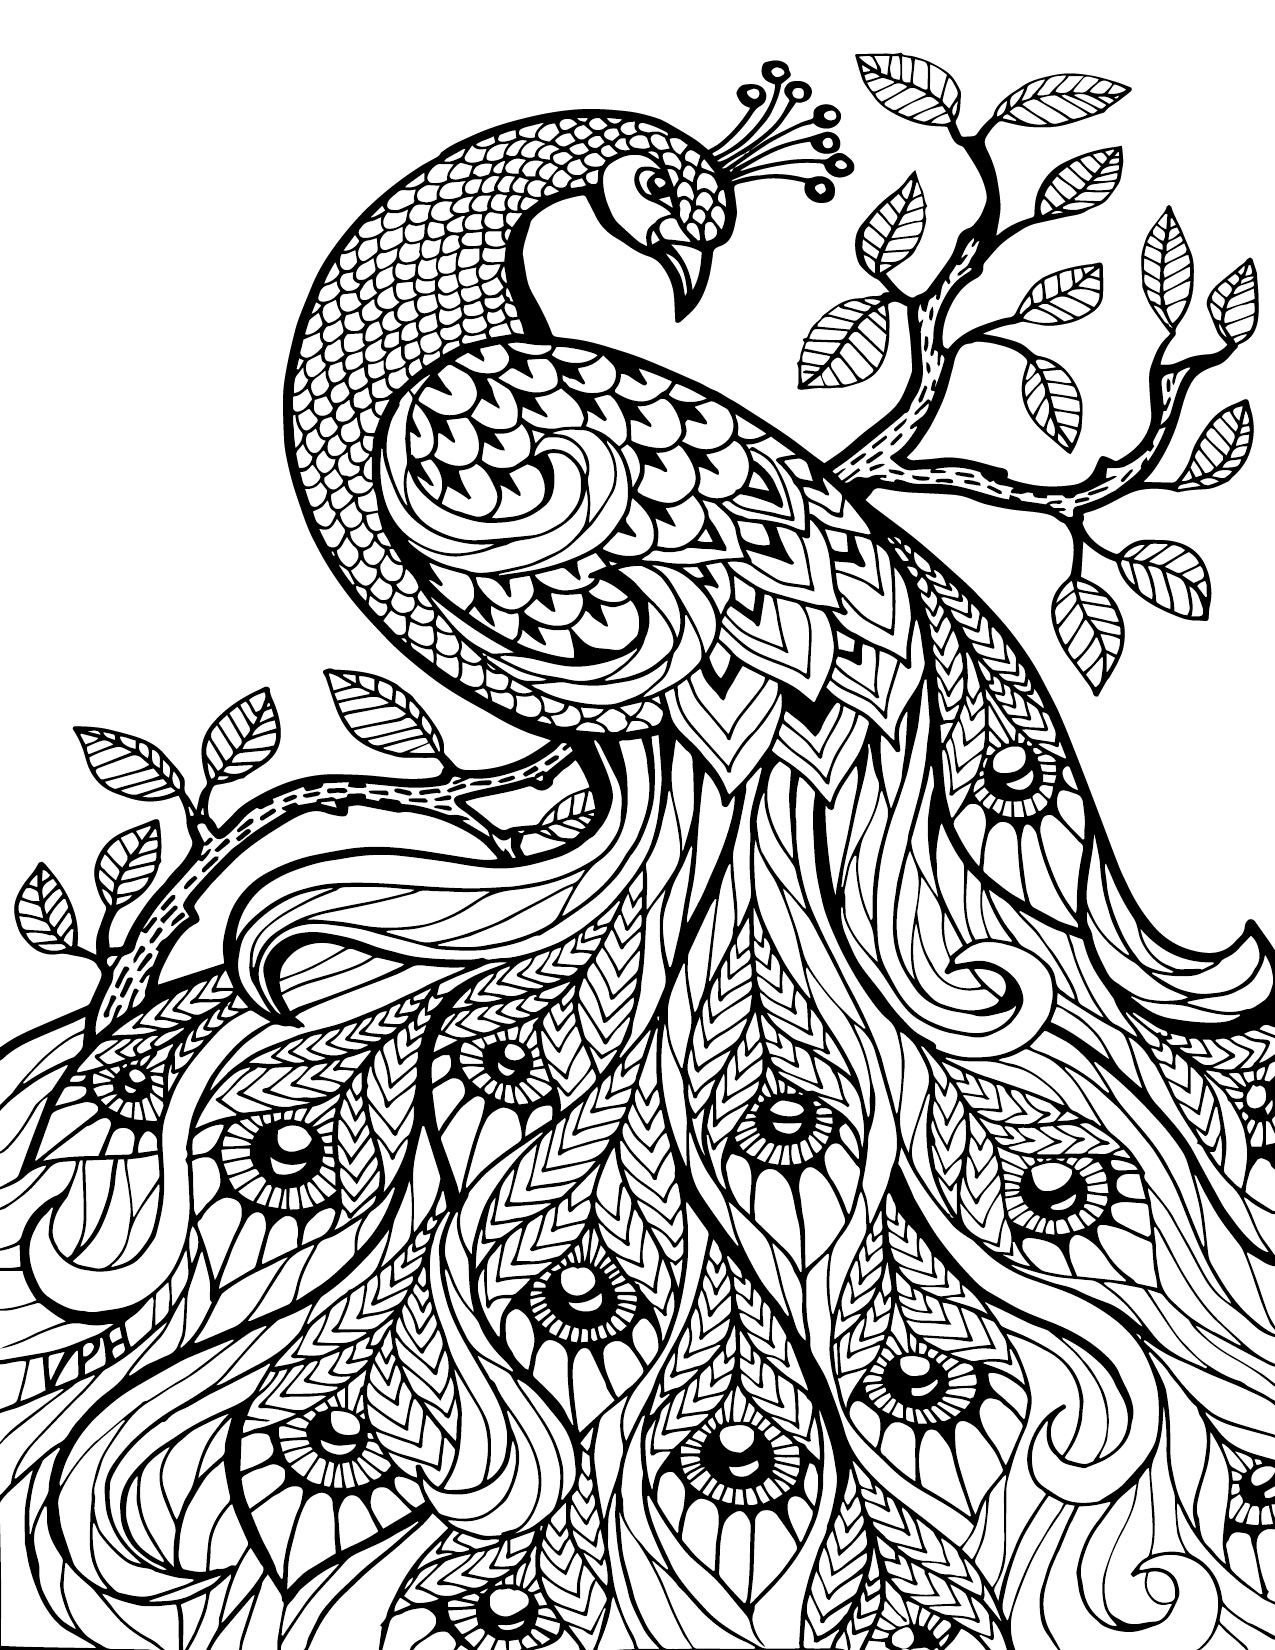 adult coloring pages download | Free Download Adult Coloring Pages